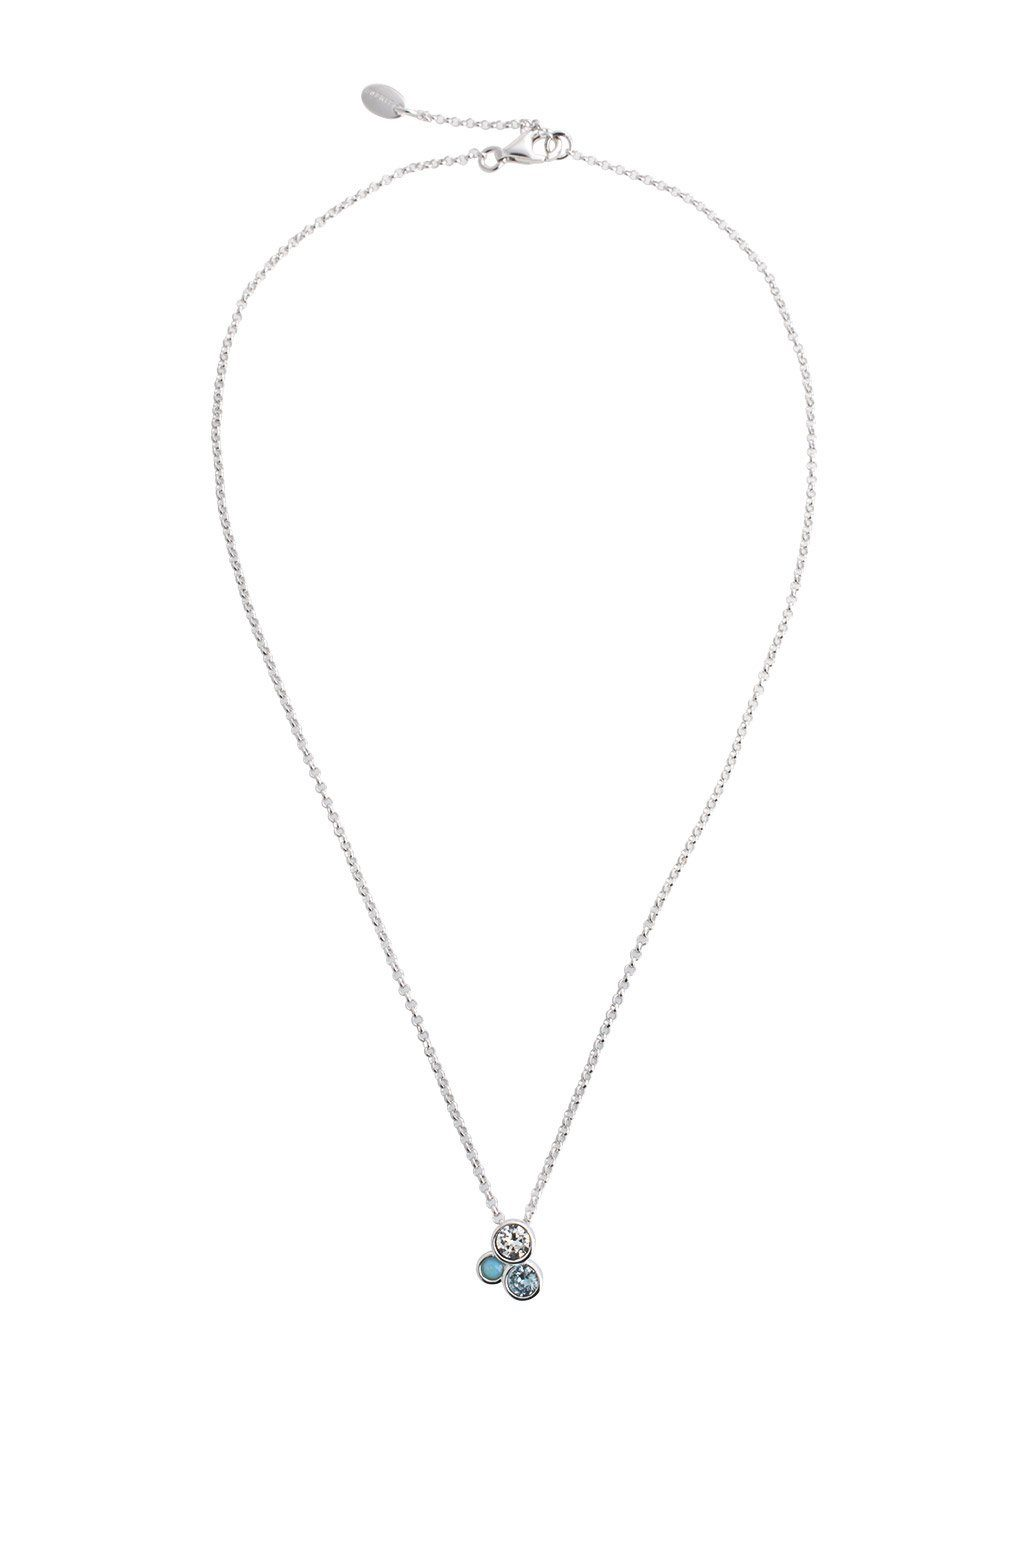 ESPRIT CASUAL Sterling Silber Kette mit Zirkonia-Charm